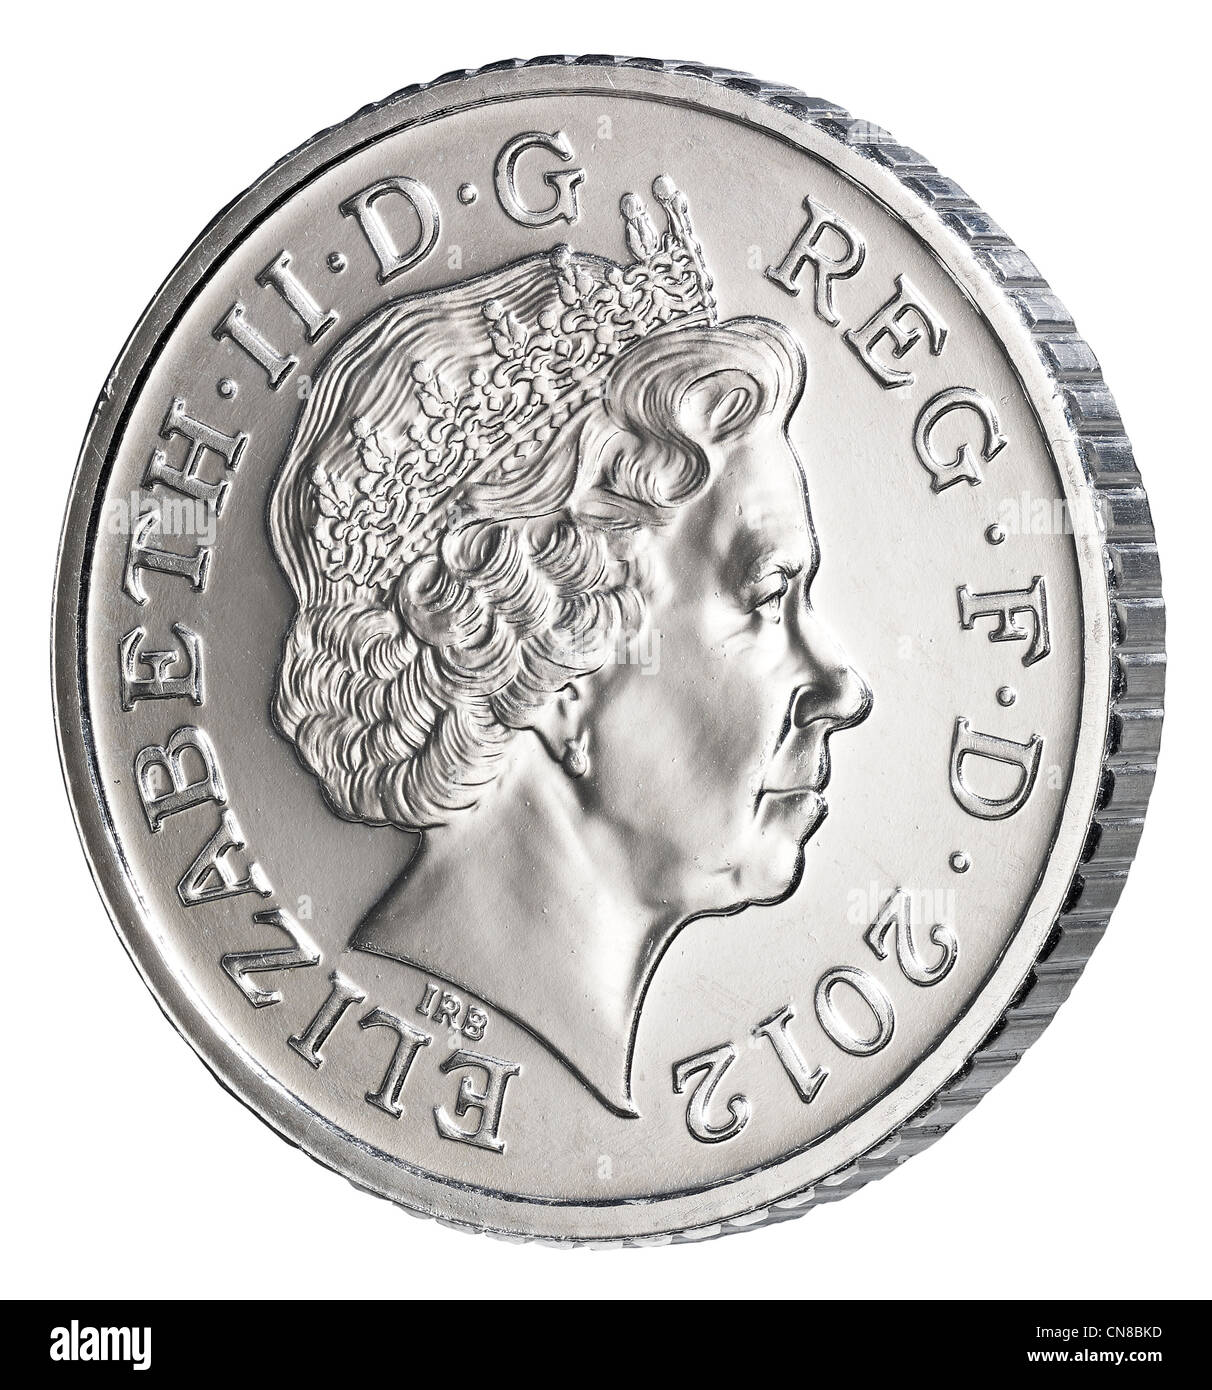 5p five pence coin side on obverse heads 2012 - Stock Image